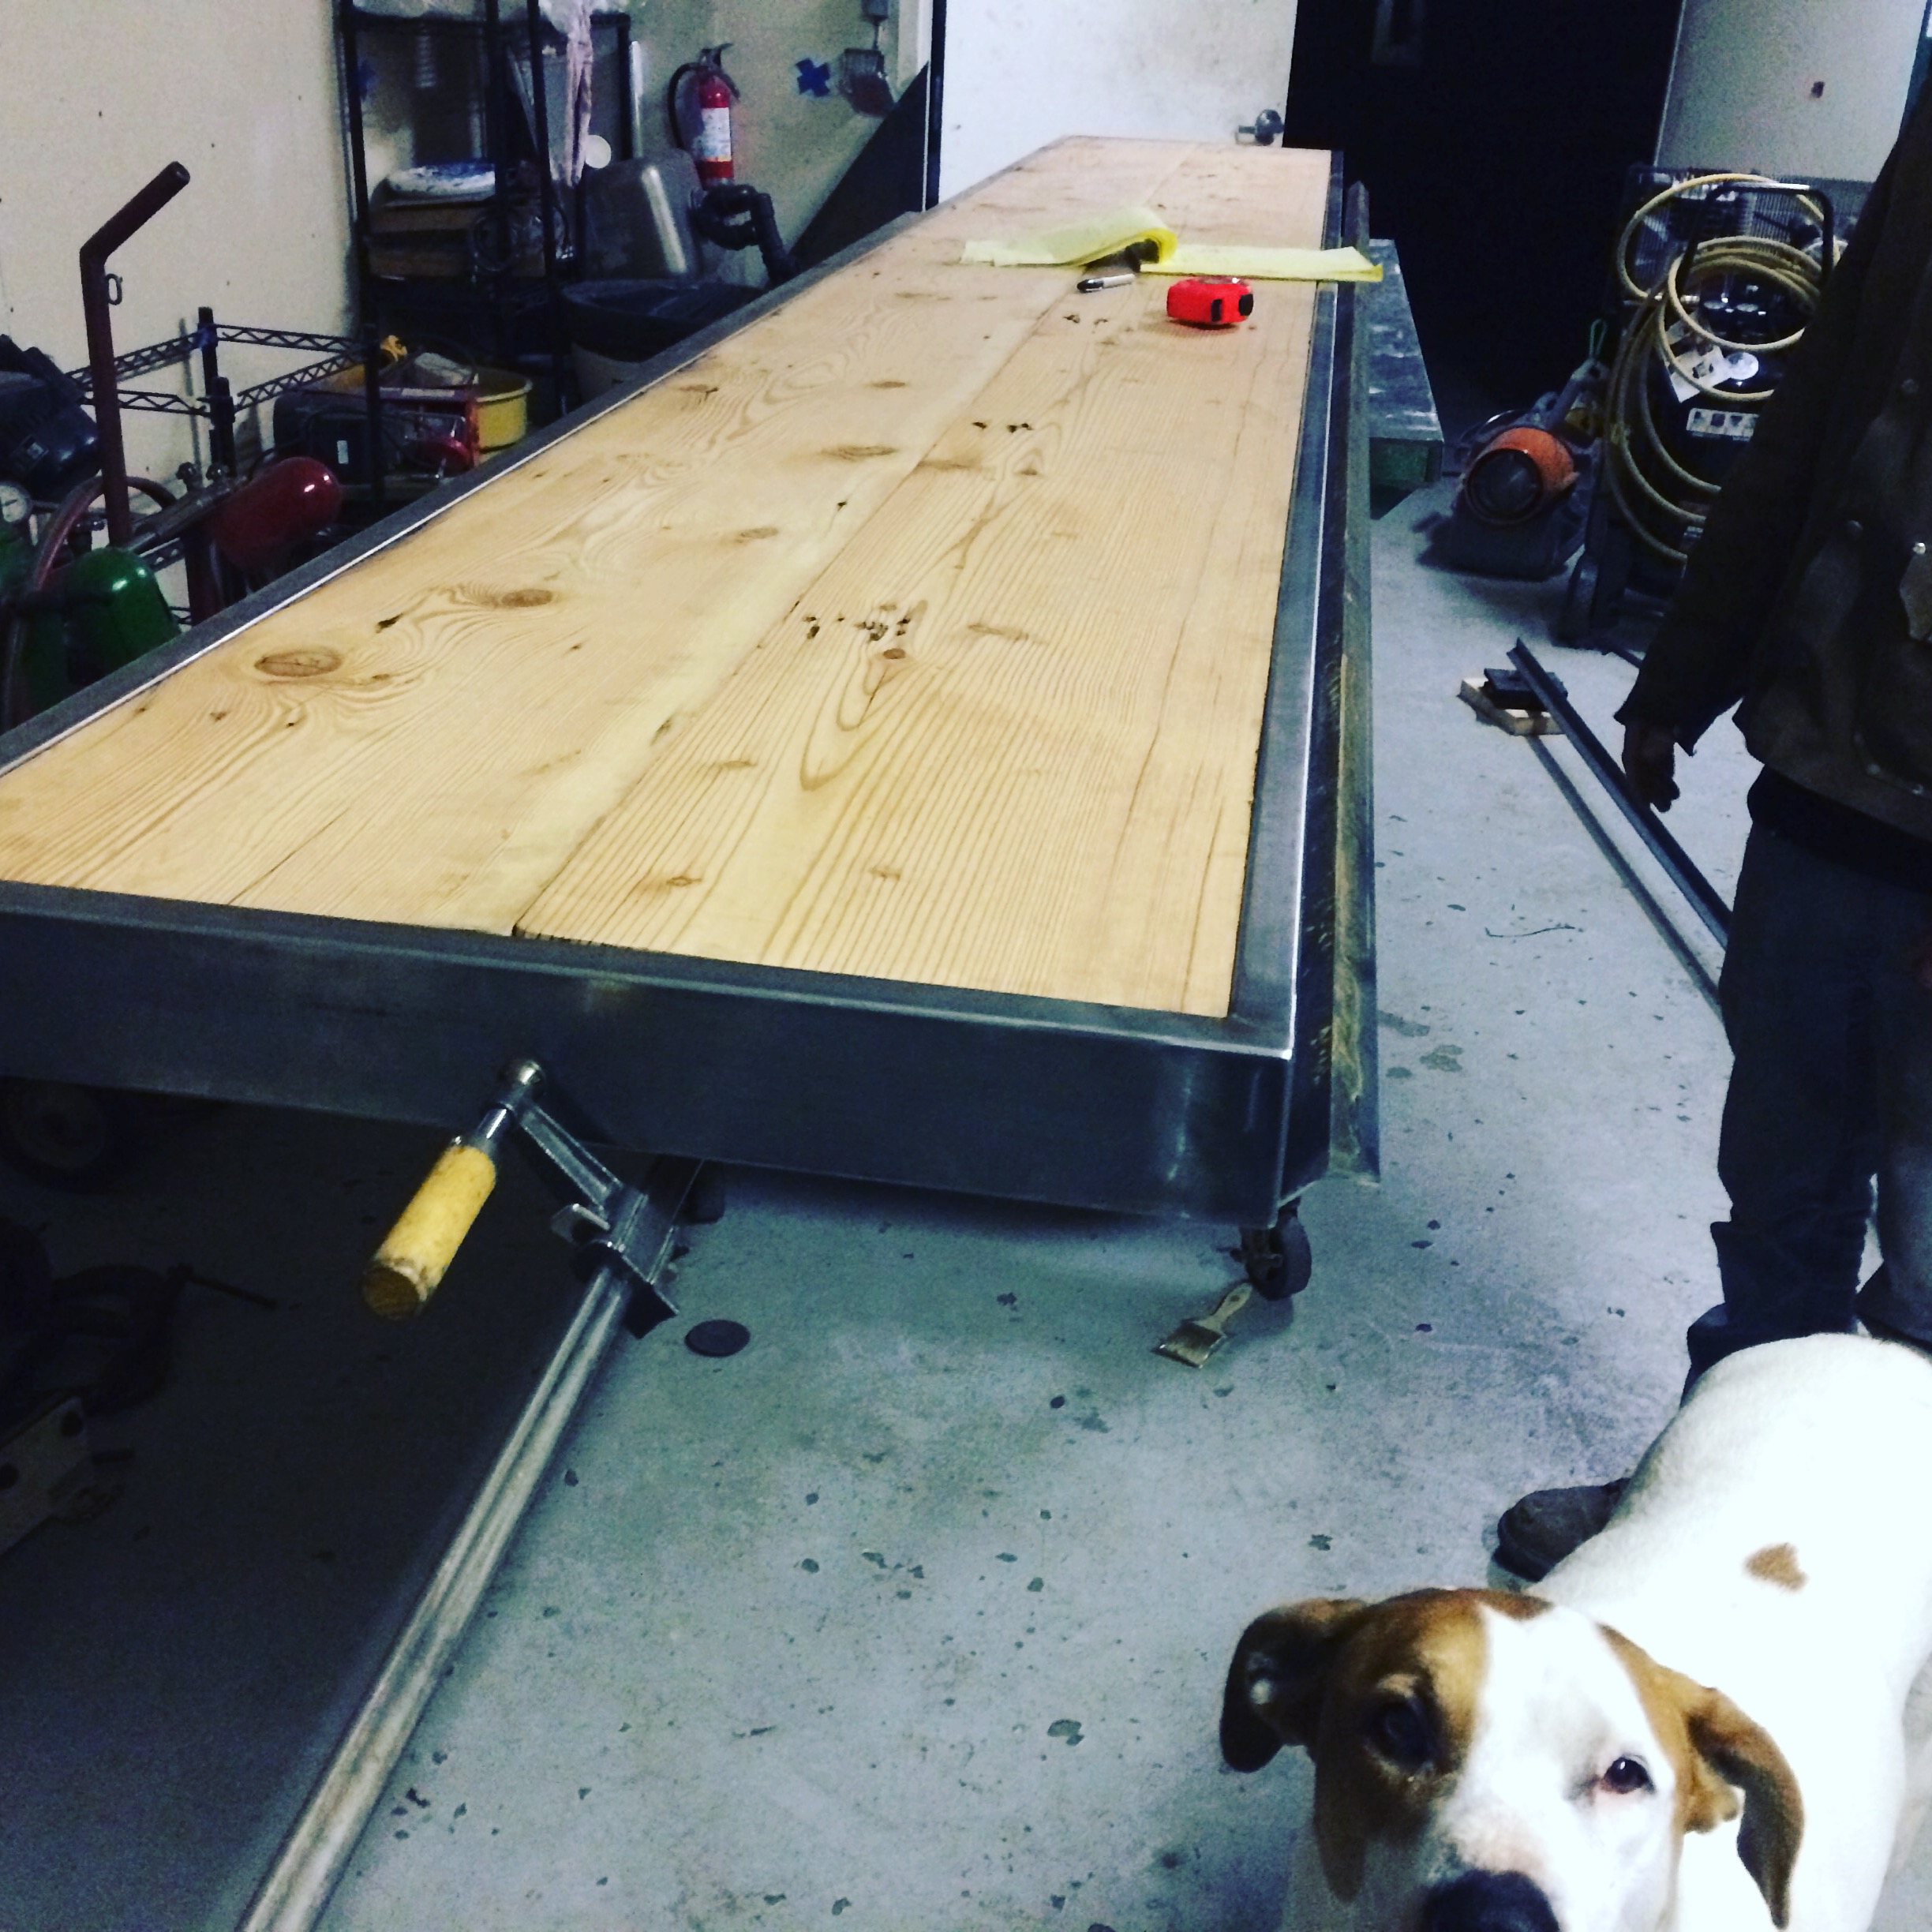 Steel and reclaimed wood coworking counter getting the finishing touches (and Jib the shop dog)!